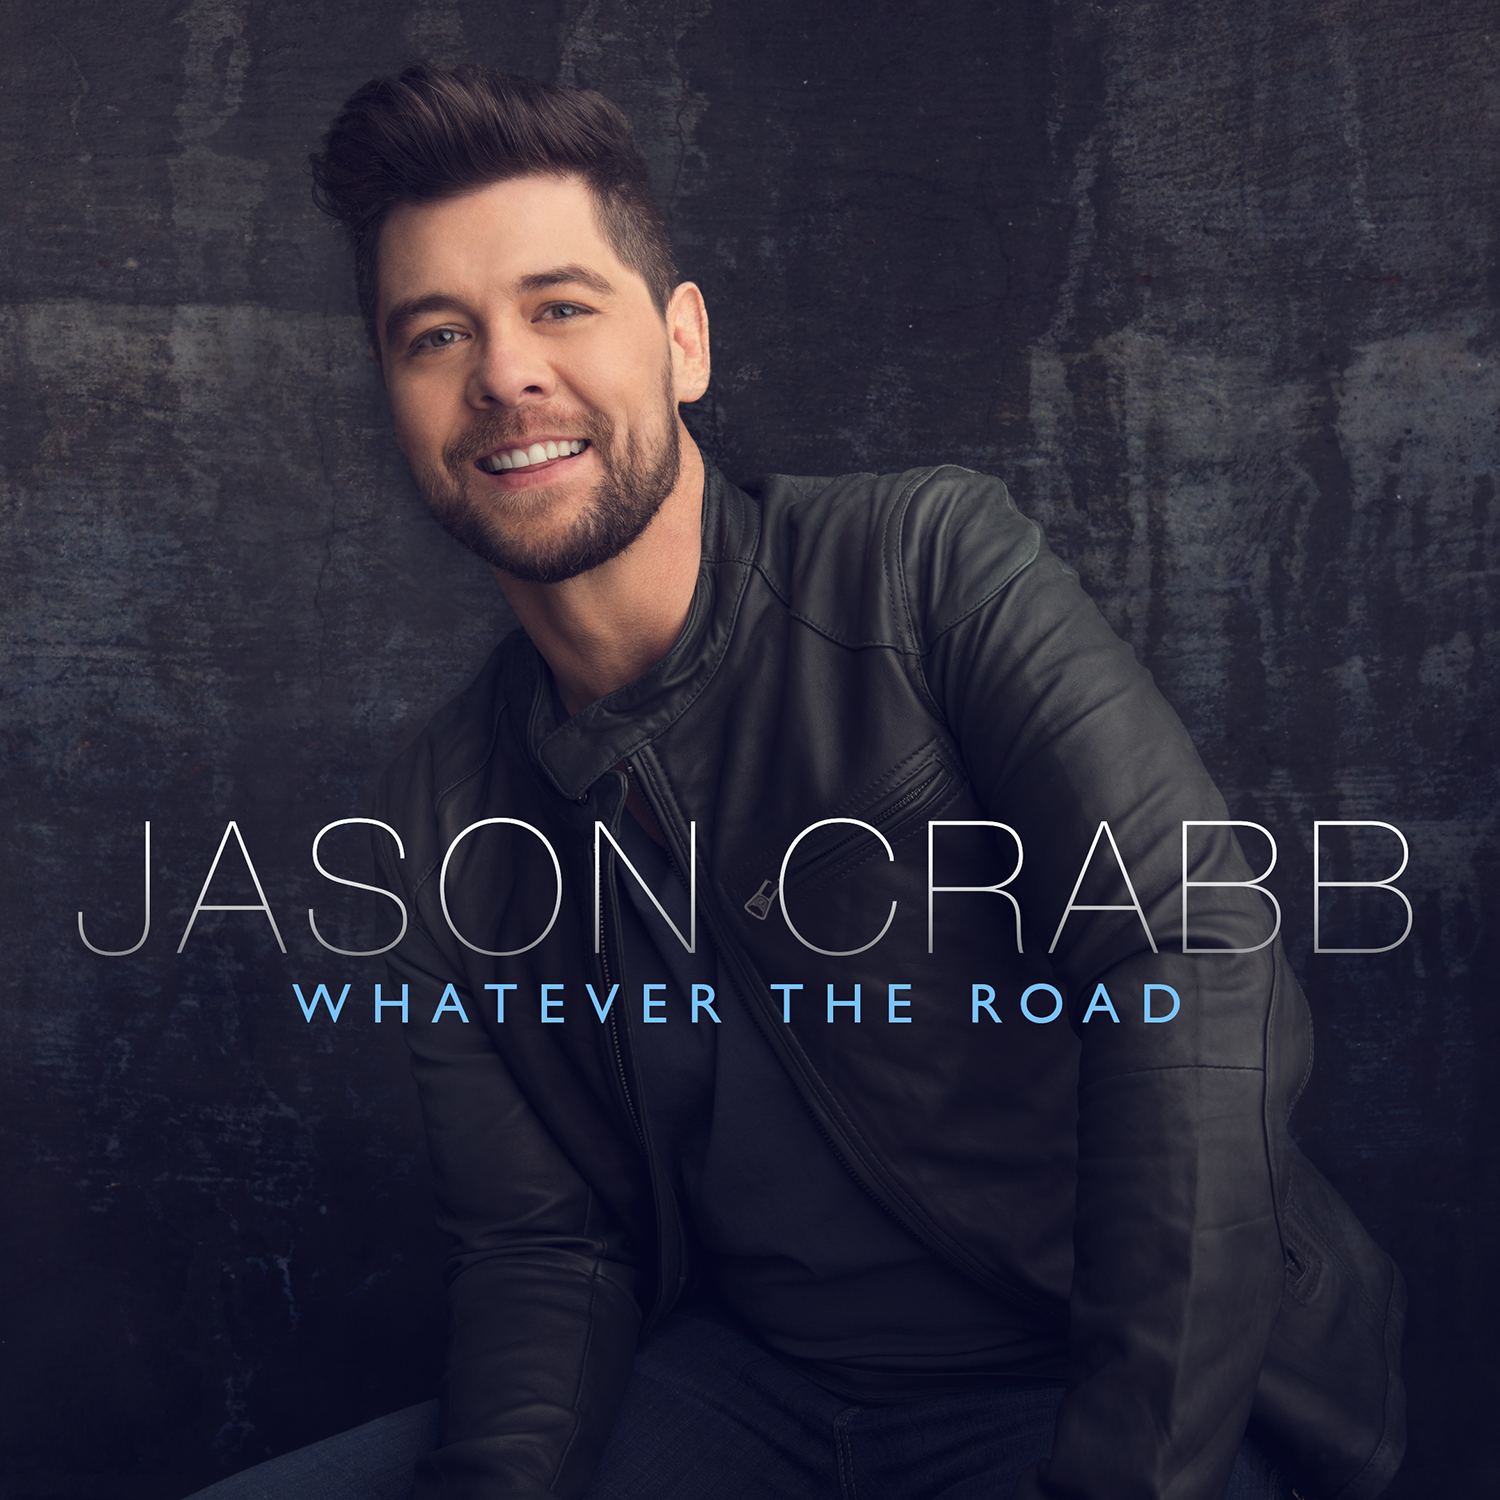 JasonCrabb_WhateverTheRoad_interview-wawradio.net